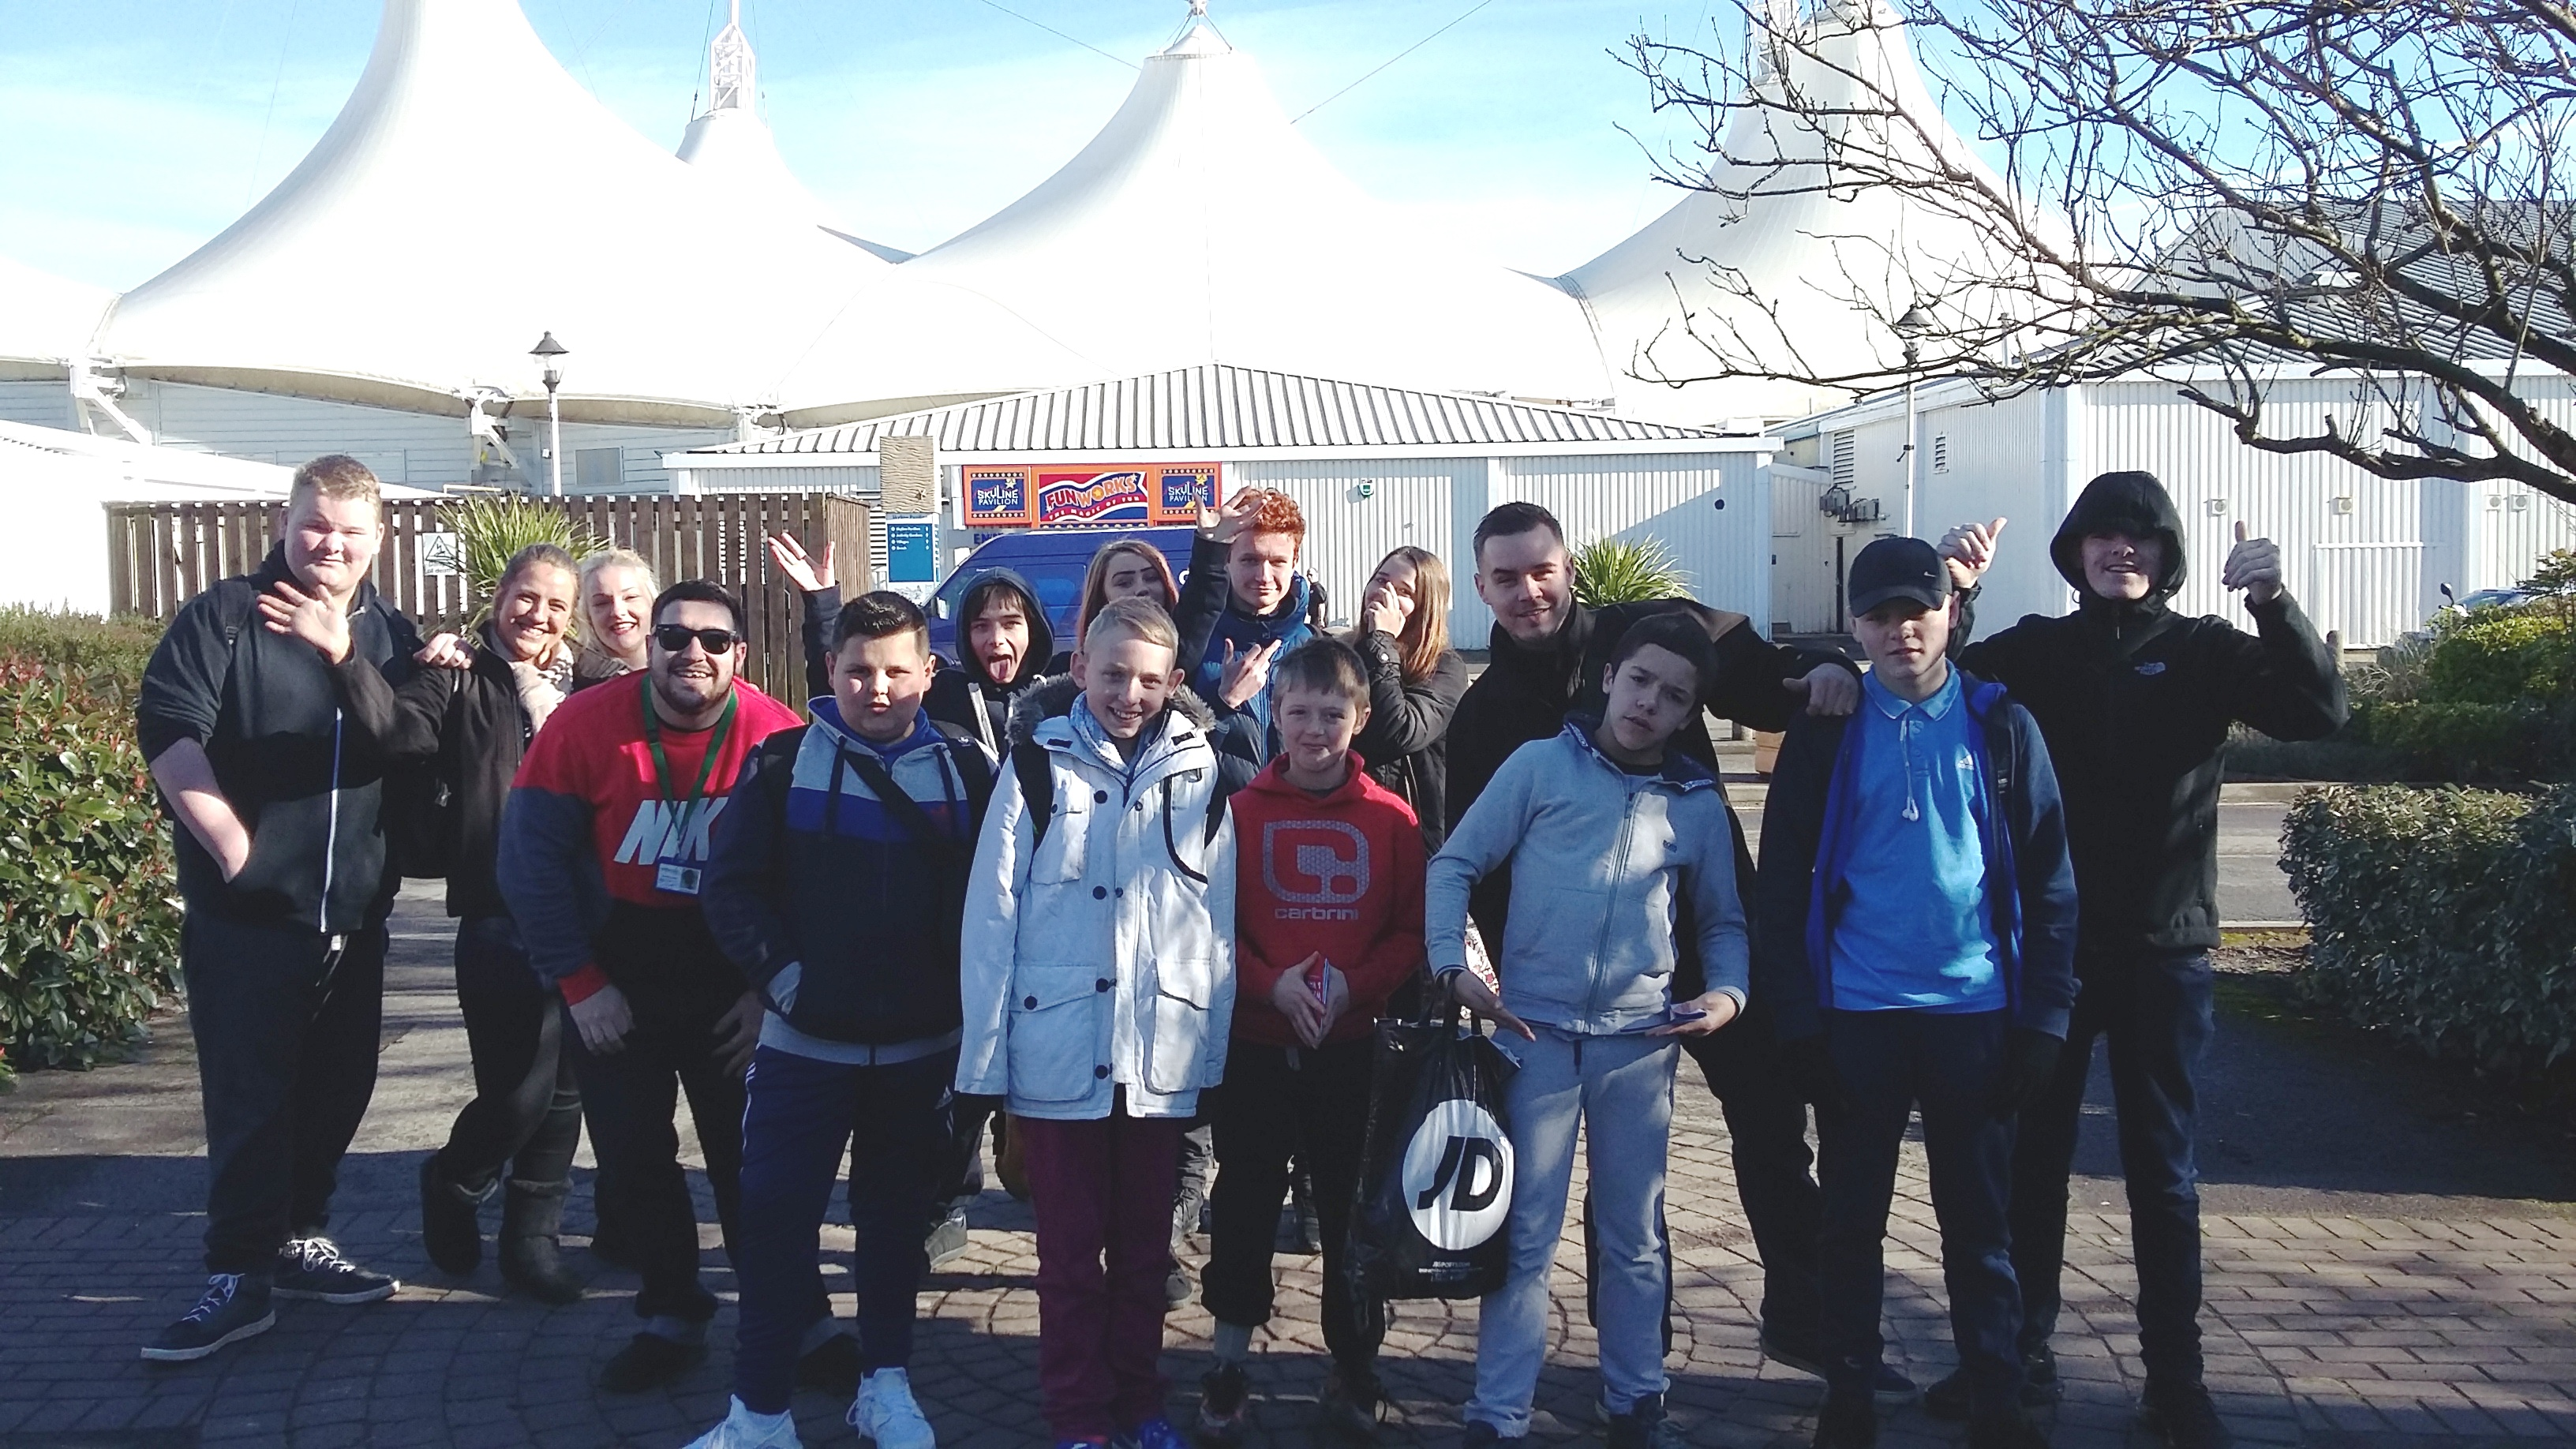 A group of young people pose for a photograph outside of Butlins in Skegness